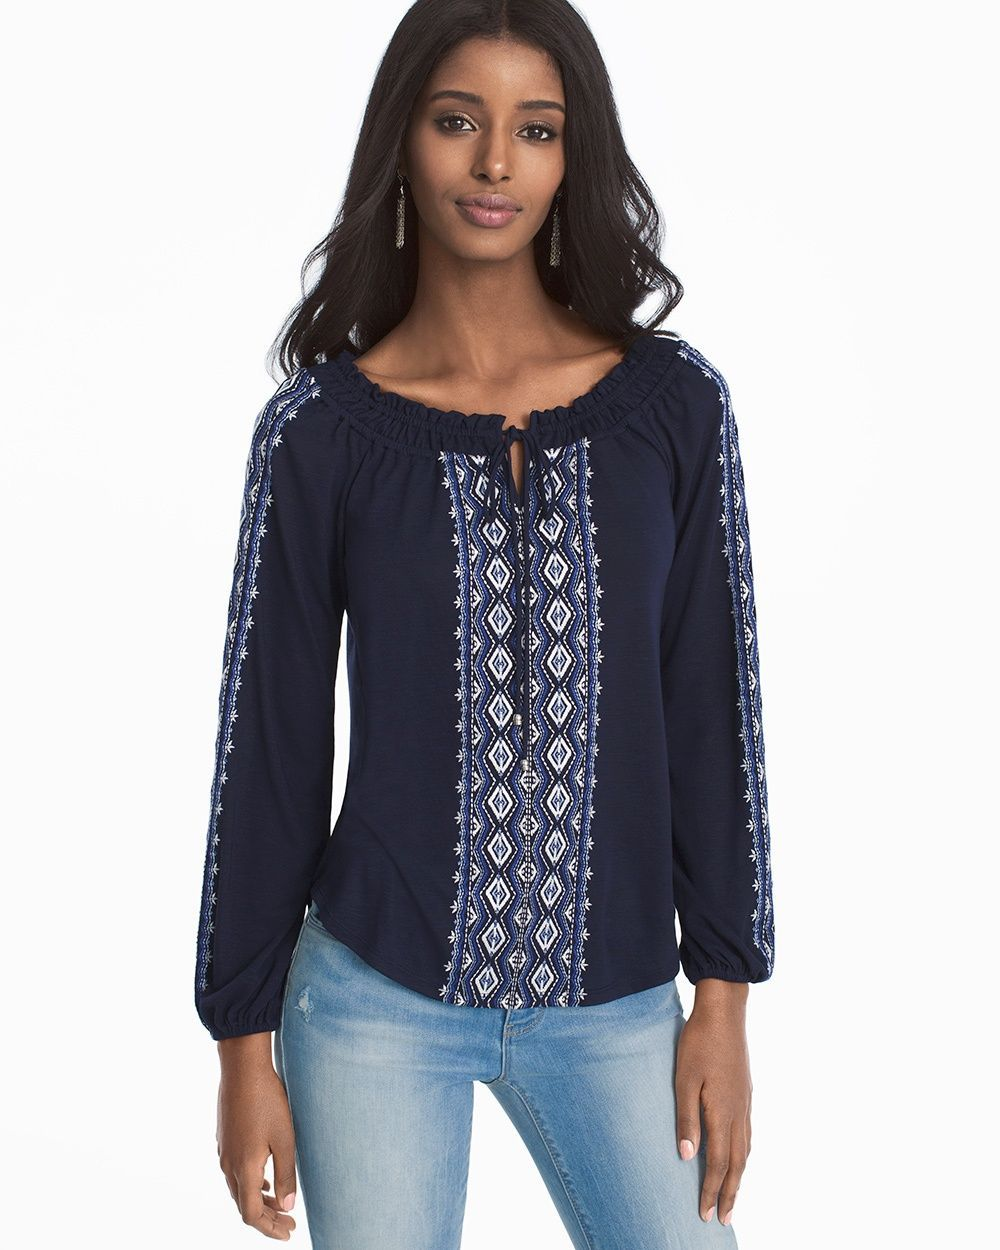 964ad708 Women's Long-Sleeve Embroidered Tie-Front Top by White House Black Market